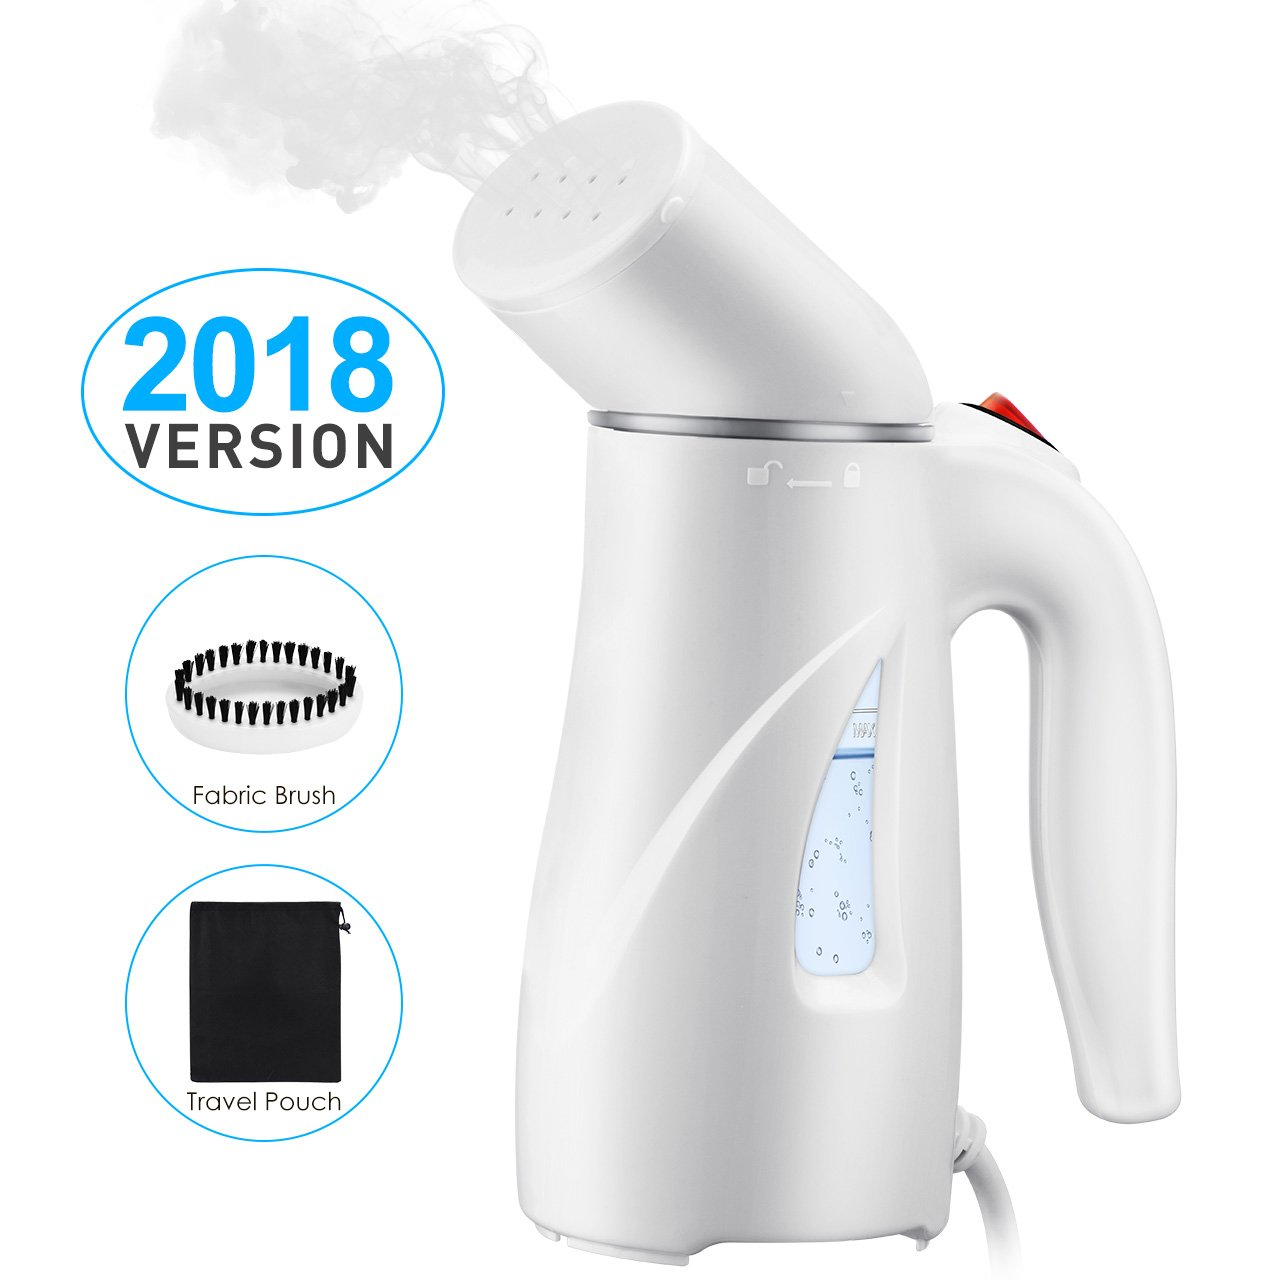 PICTEK Steamers Clothes, Fast Heat-up Handheld Garment Steamer, Compact Portable Wrinkle Remover Fabric Steamer Automatic Shut-Off, Pouch Travel, Home, Office, 110ml